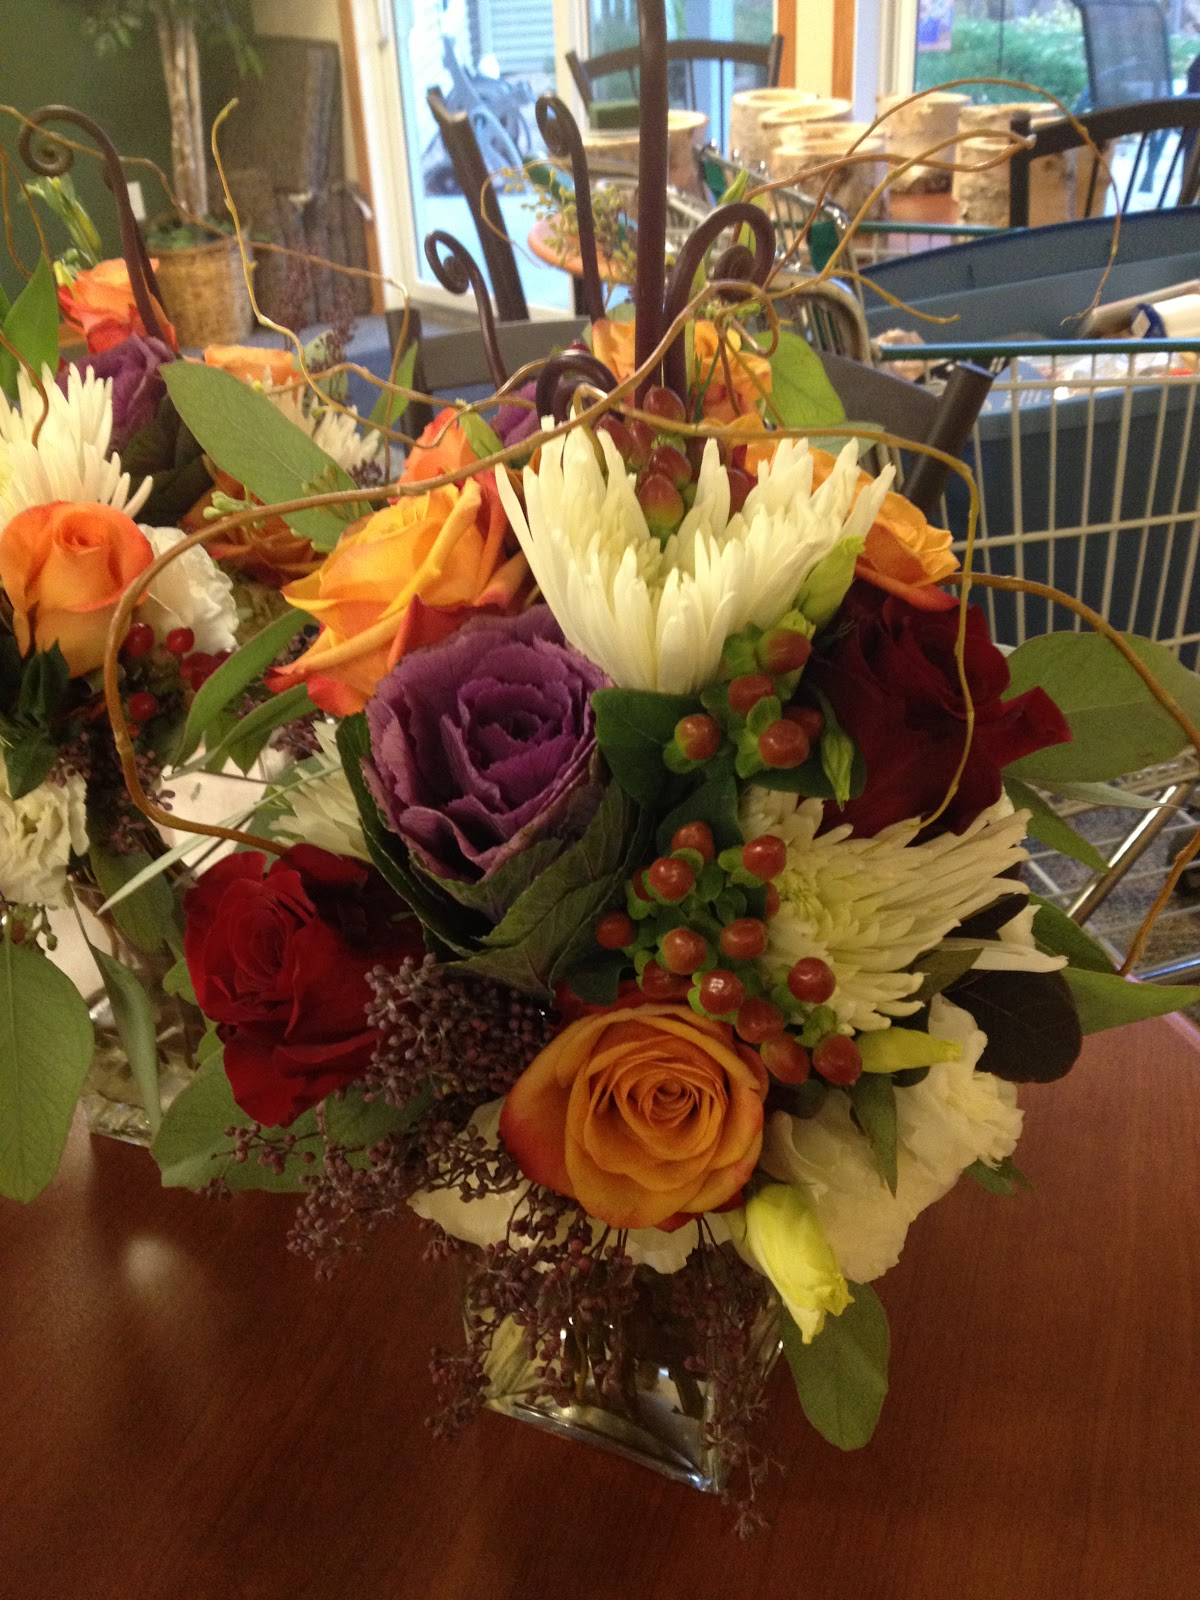 This Is Not A Great Pic But Was The Bridal Bouquet She Wanted Larger Version Of Her Girls Bouquets With All Same Colors